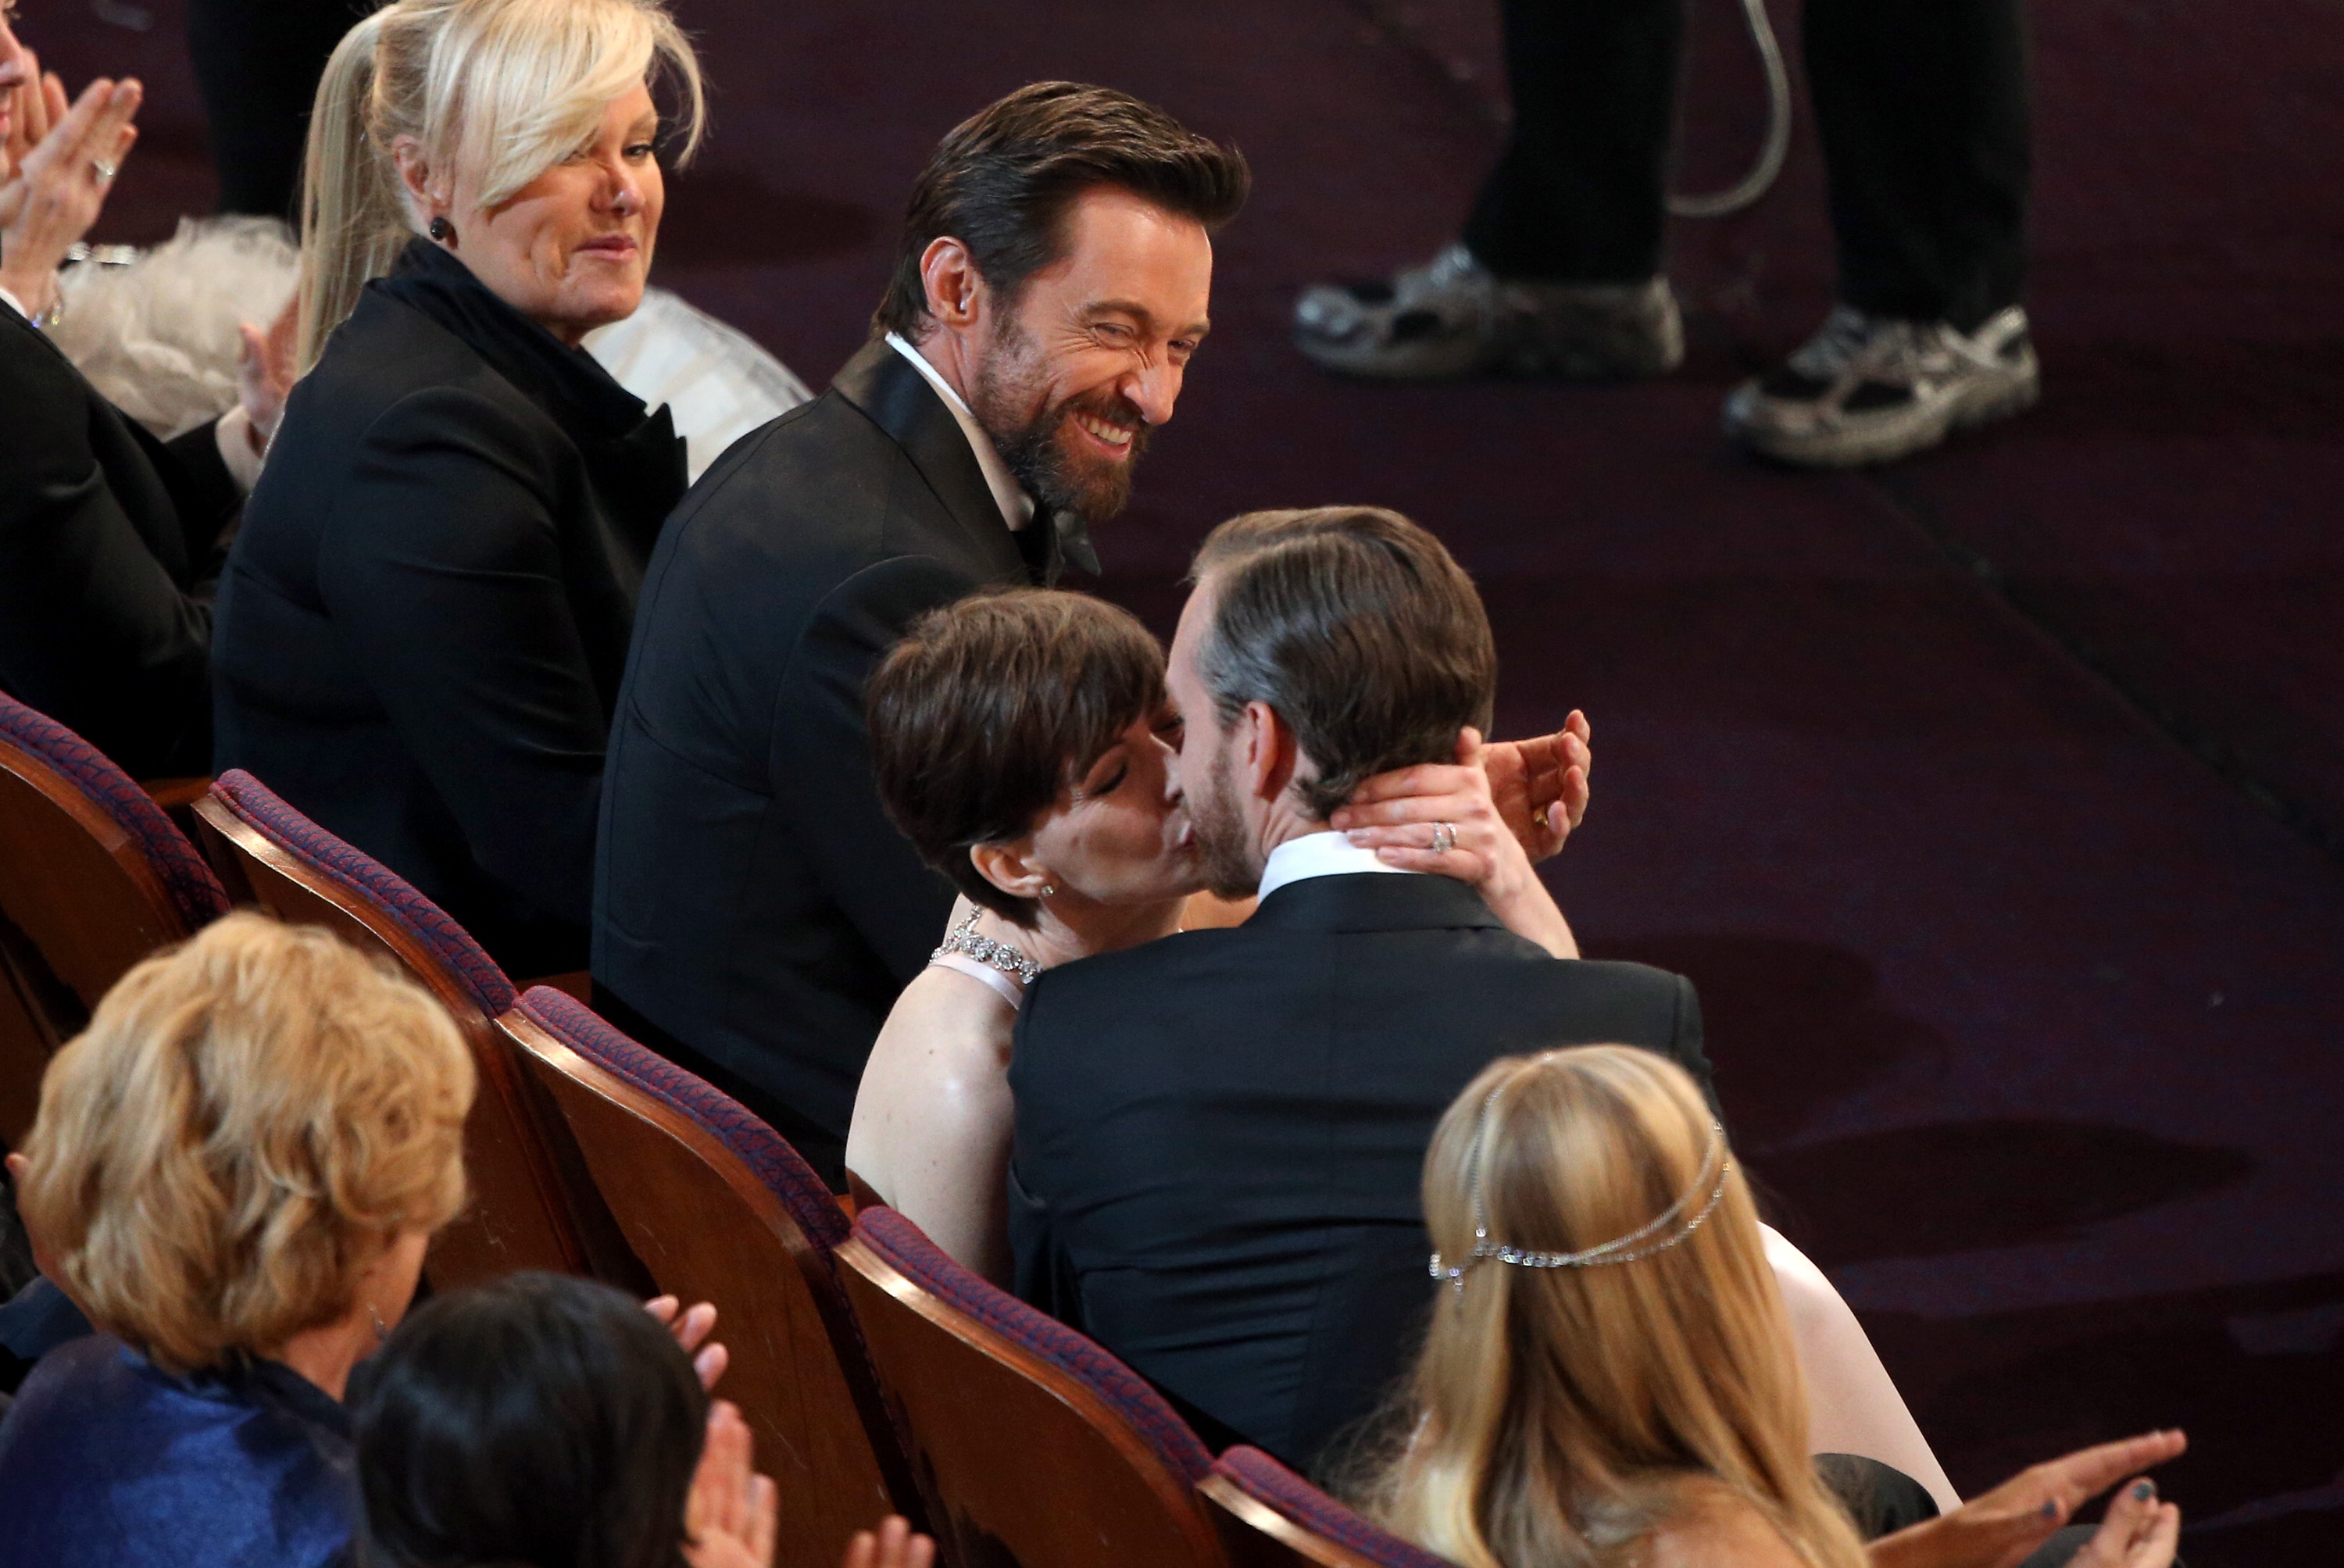 Anne Hathaway kissed her husband, Adam Shulman, while Hugh Jackman and his wife, Deborra-Lee Furness, looked on after her best supporting actress win was announced.